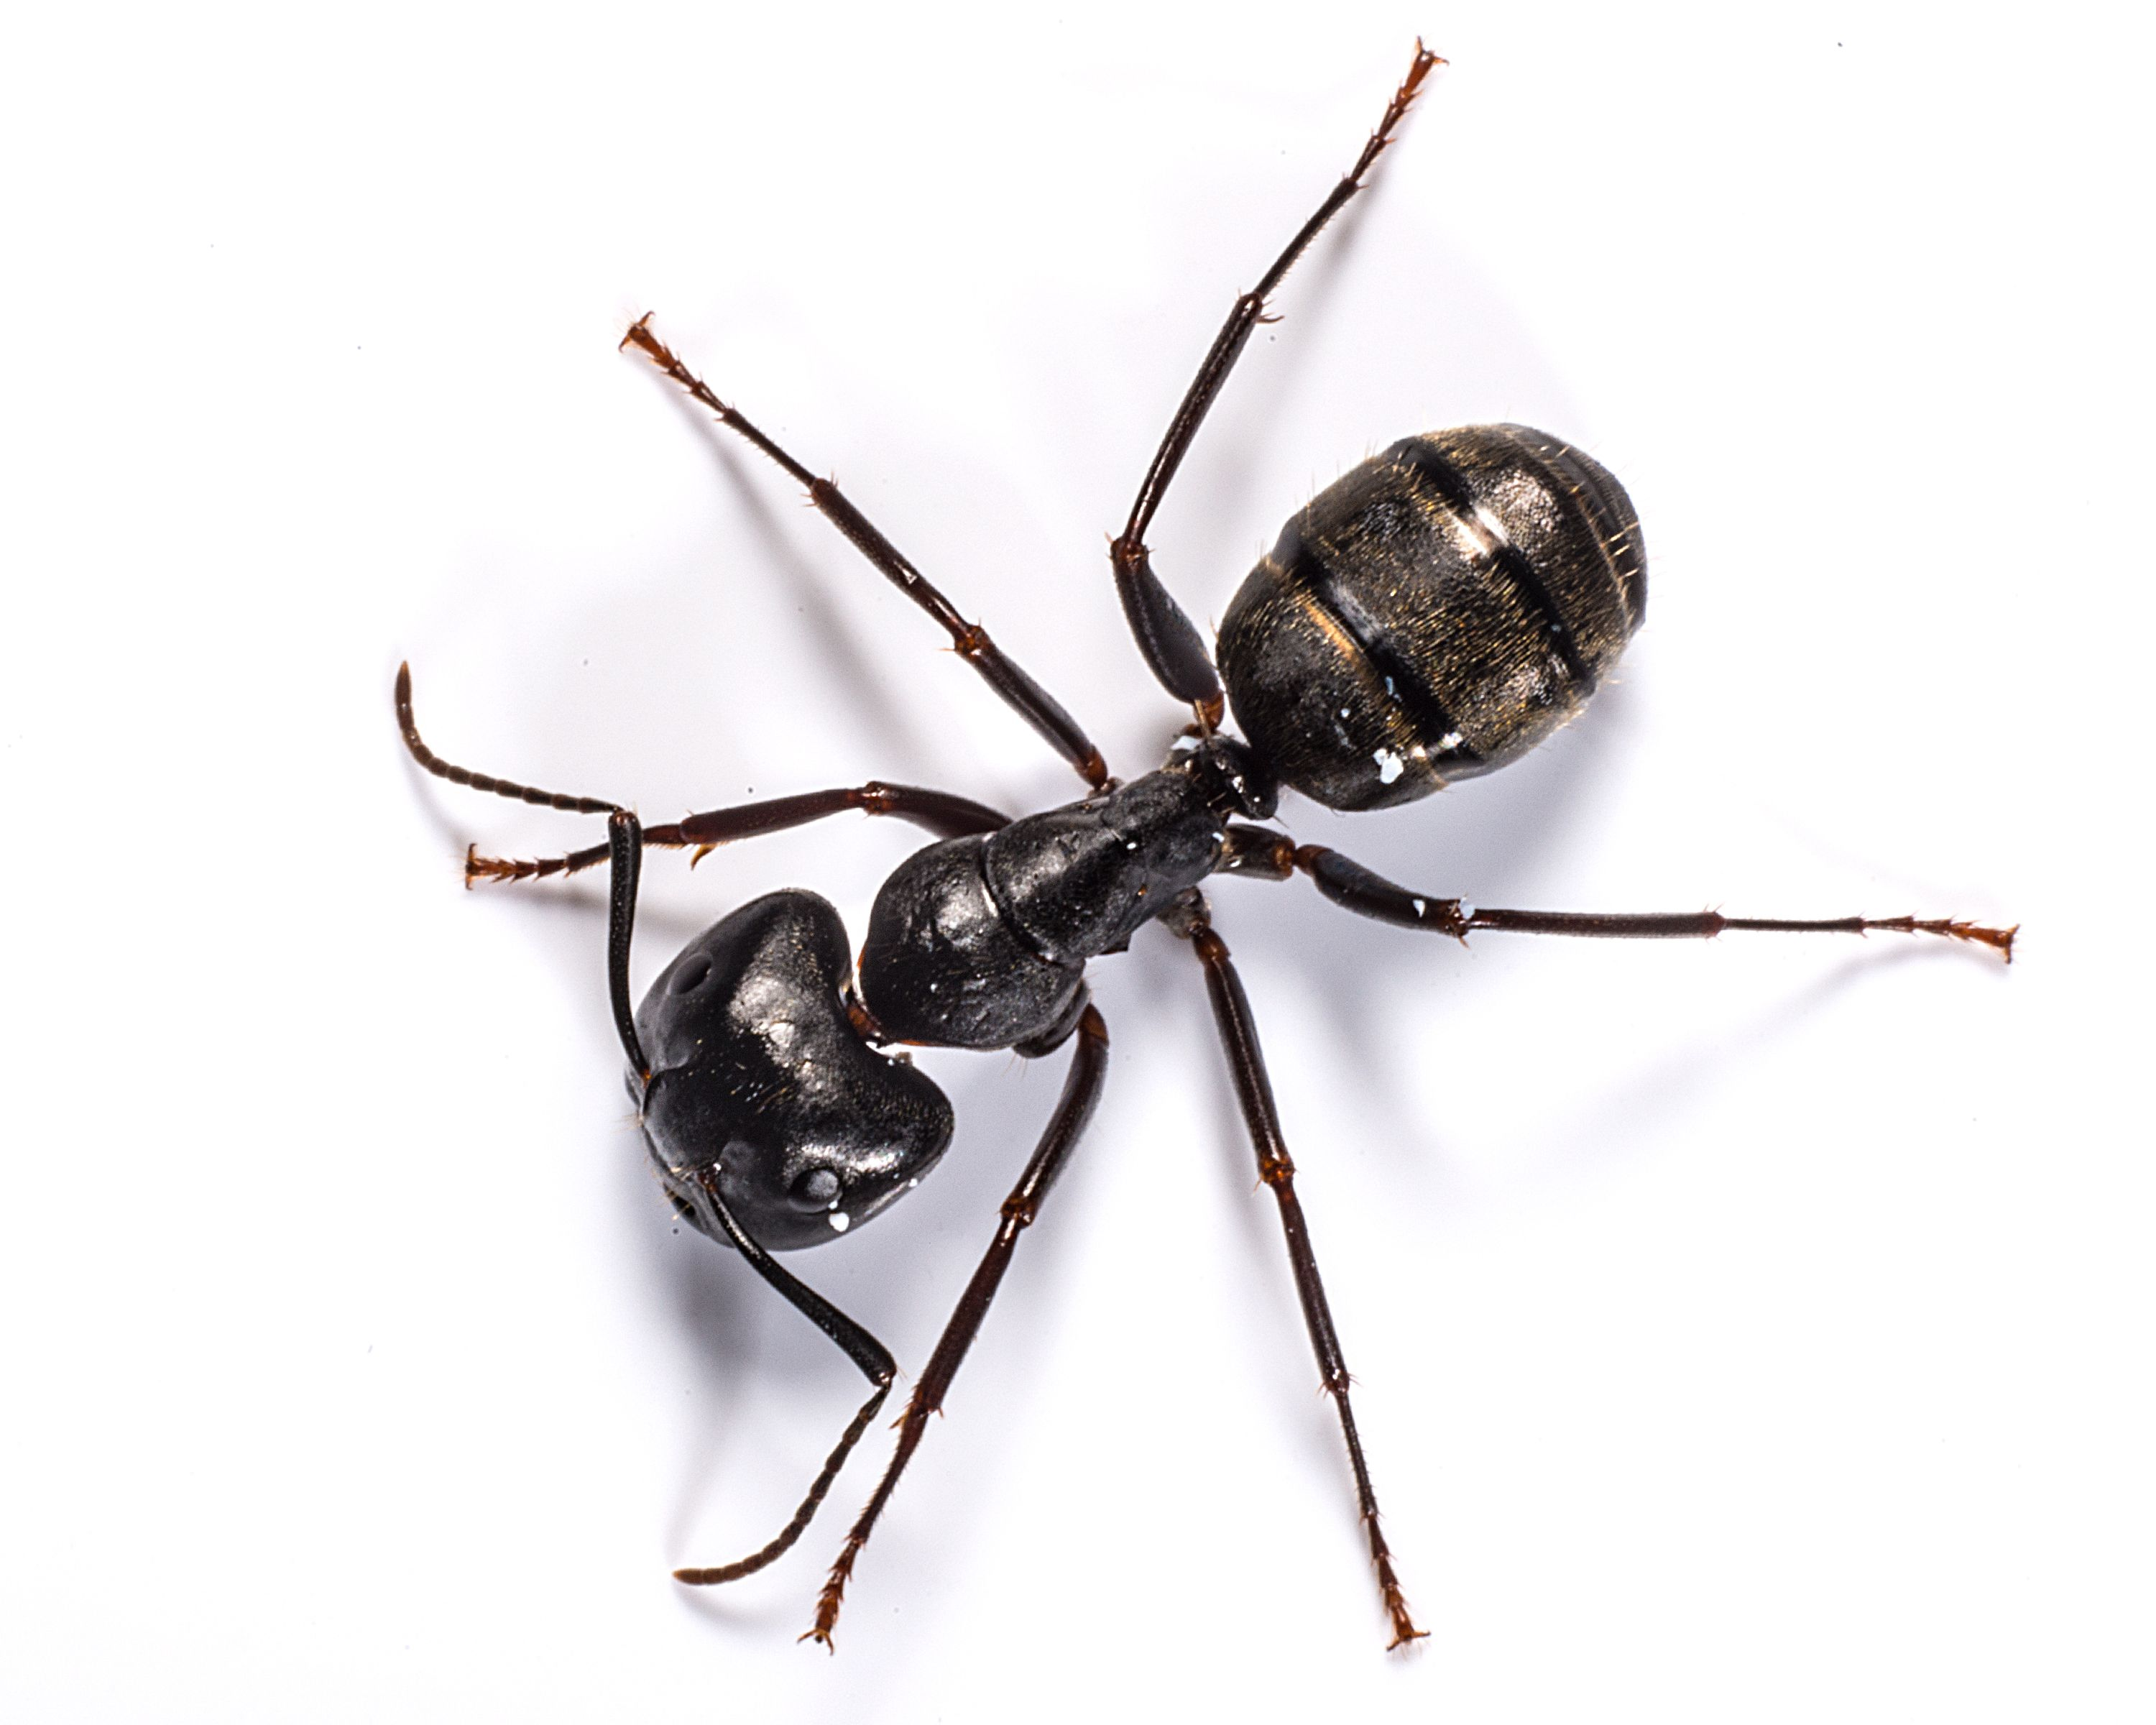 Local Ant Exterminators With Images Ants Ant Control